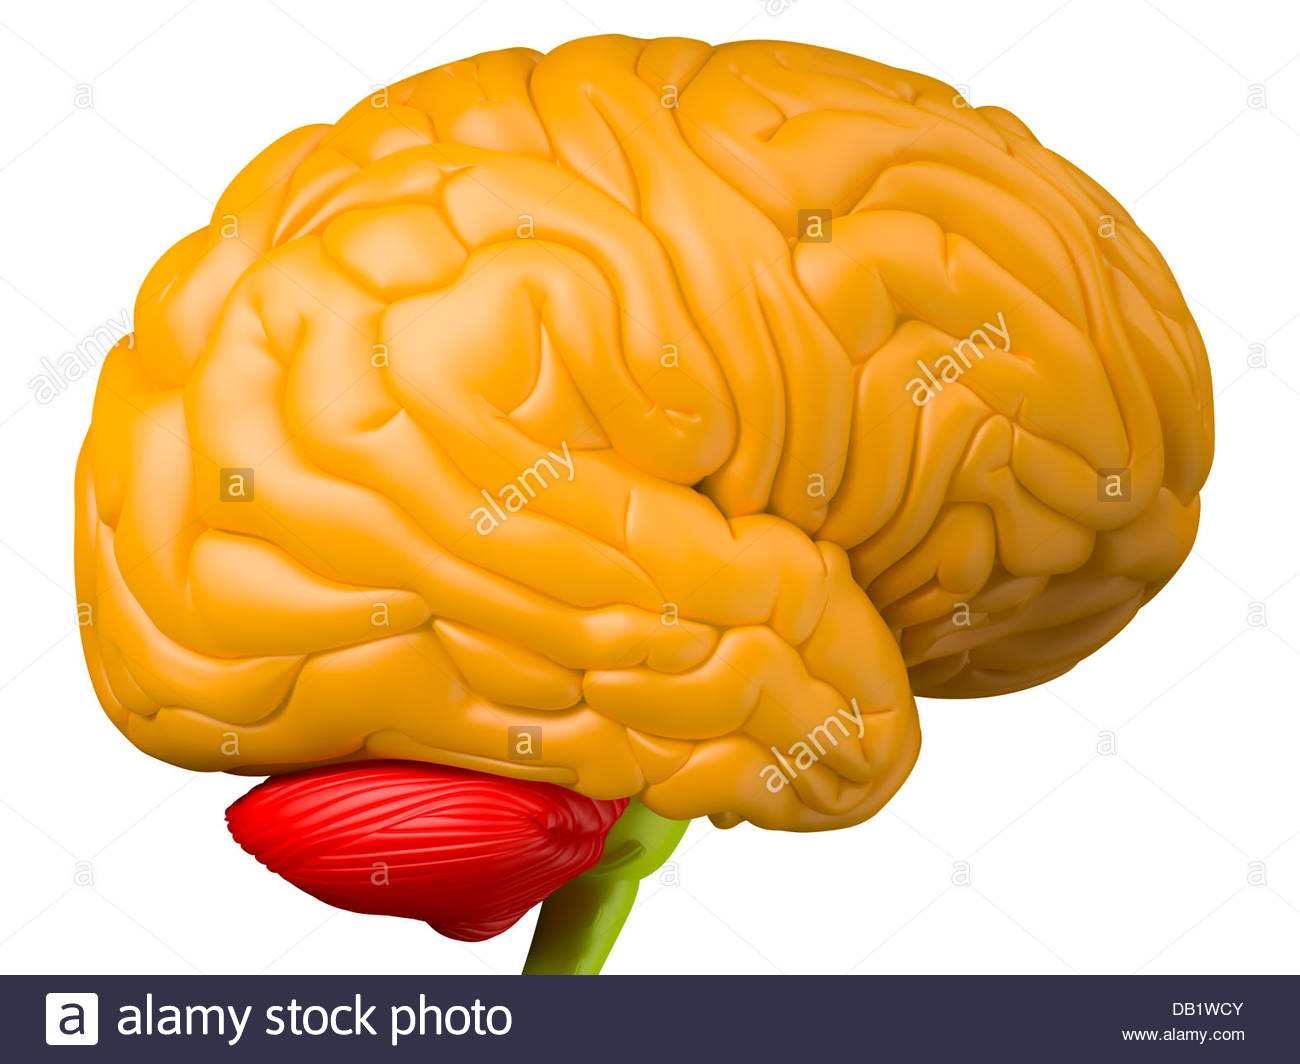 Digital medical illustration depicting the side view of the human brain. Orange: brain lobes. Green: brain stem. - Stock Image